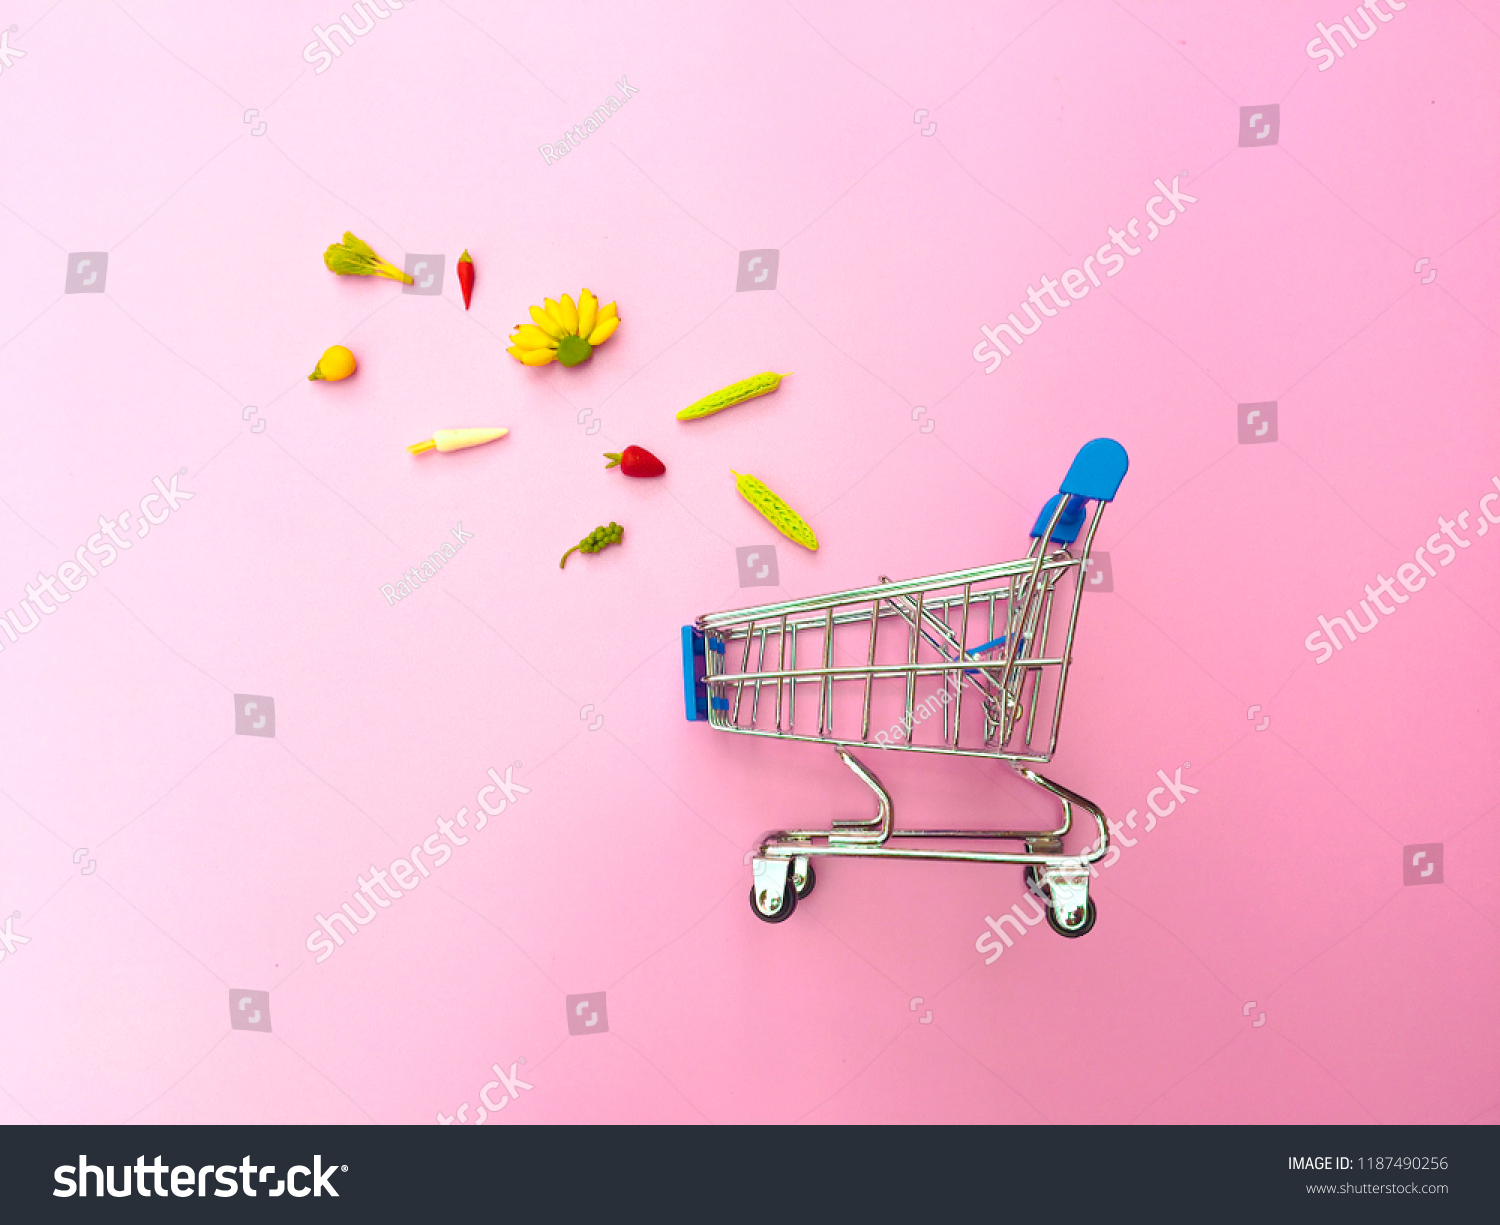 Ideas Online Shopping Pink Background Shopping Stock Photo Edit Now 1187490256